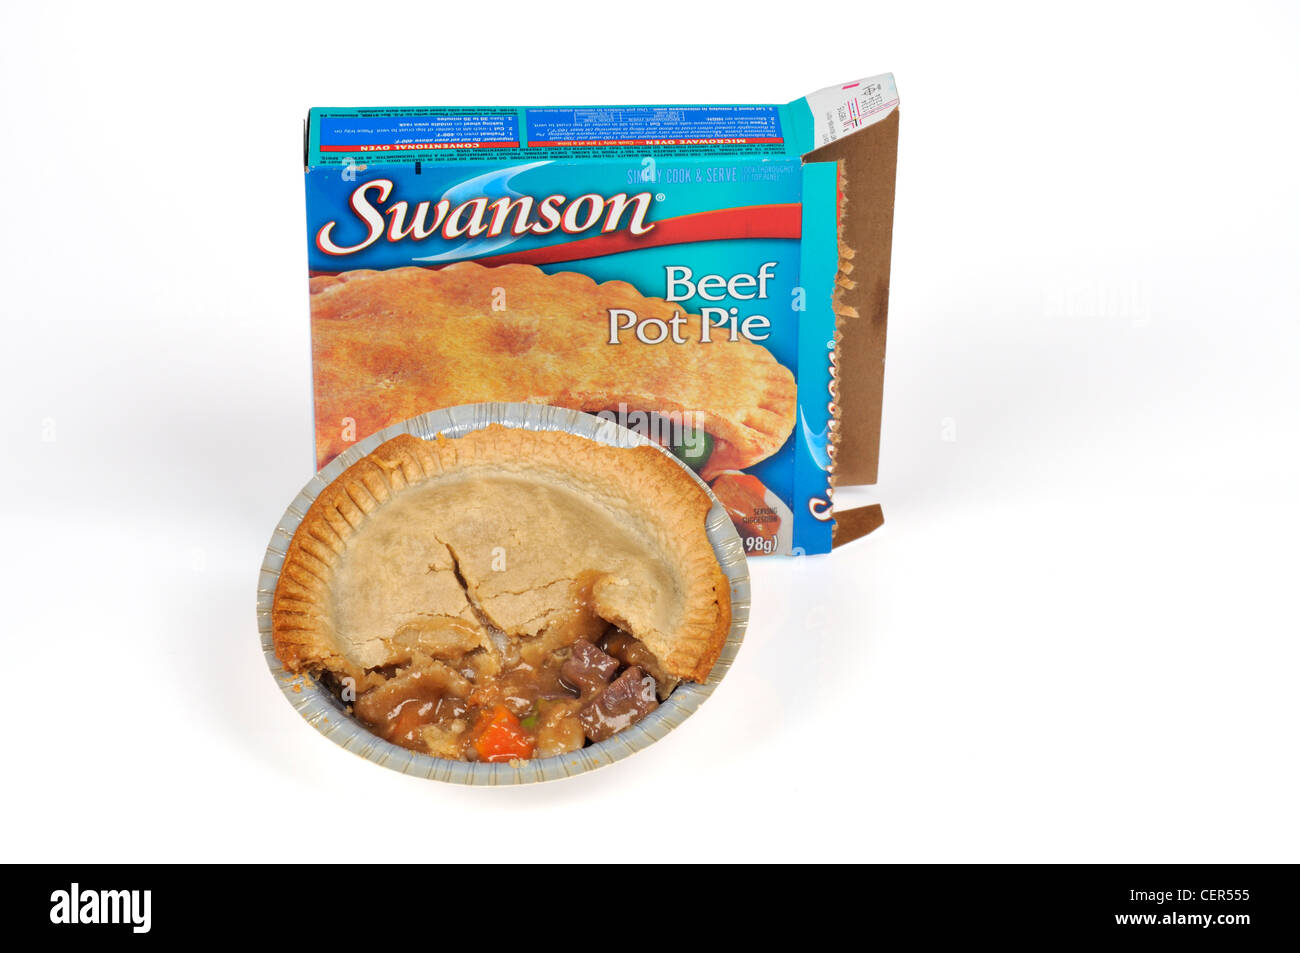 Cooked Swanson beef pot pie tv dinner in front of packaging on white background cut out. - Stock Image